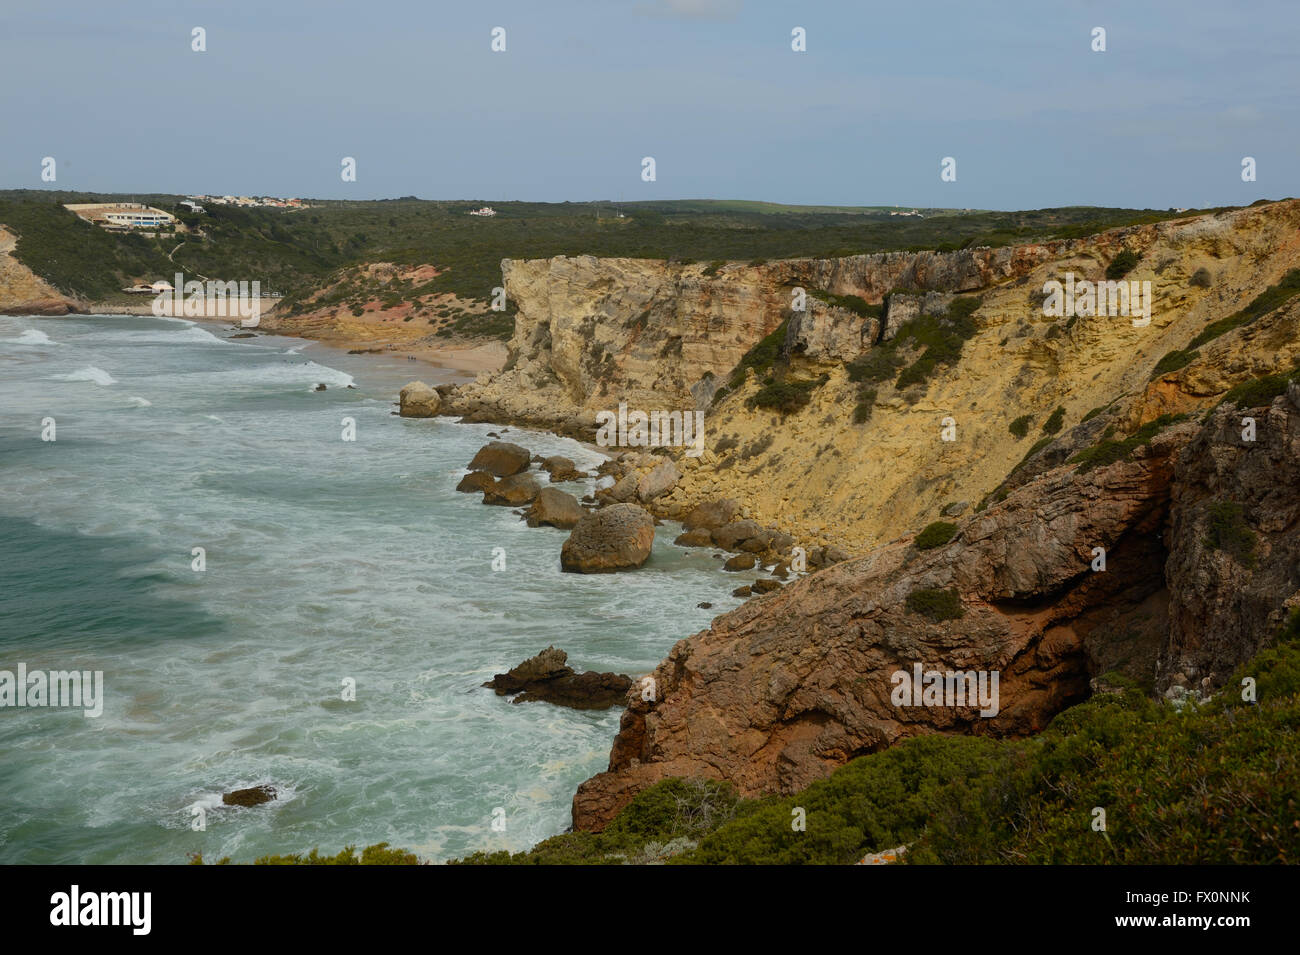 The cliffs at Zavial on the Algarve in Portugal show ancient changes in sea level and climate causing different - Stock Image